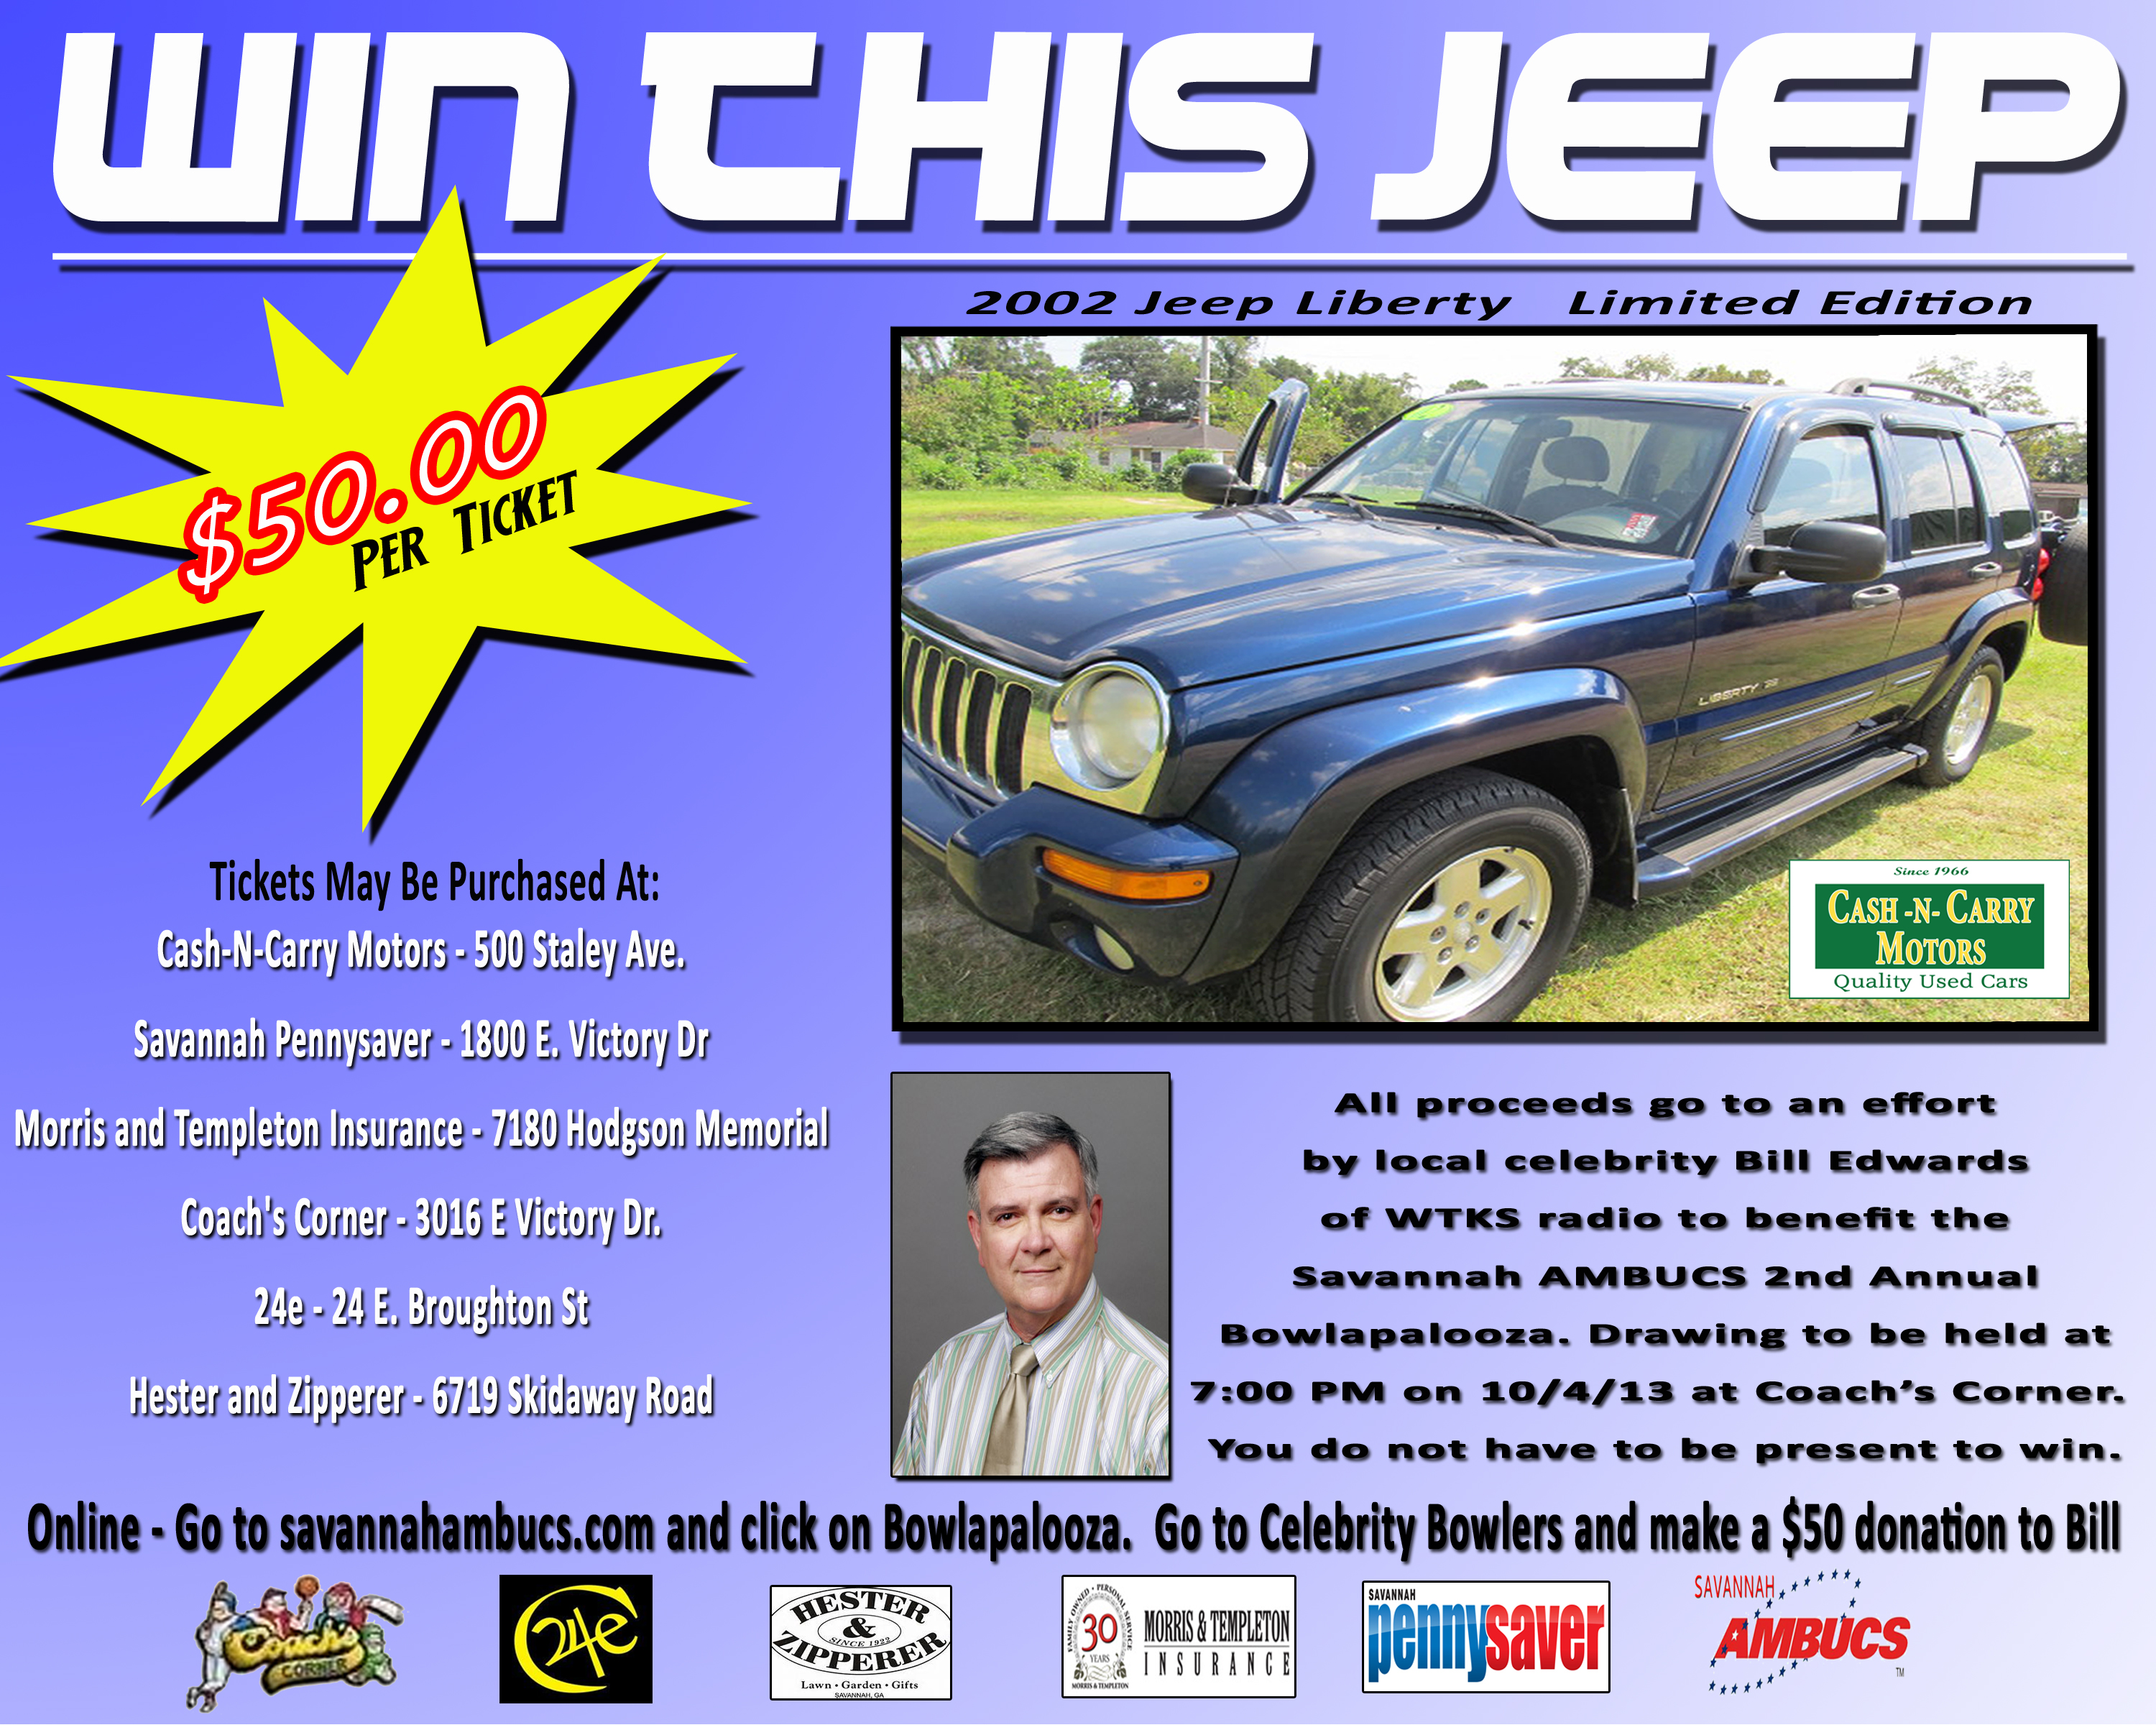 $50 Raffle for a Used Car from Cash-N-Carry Motors – helps local ...